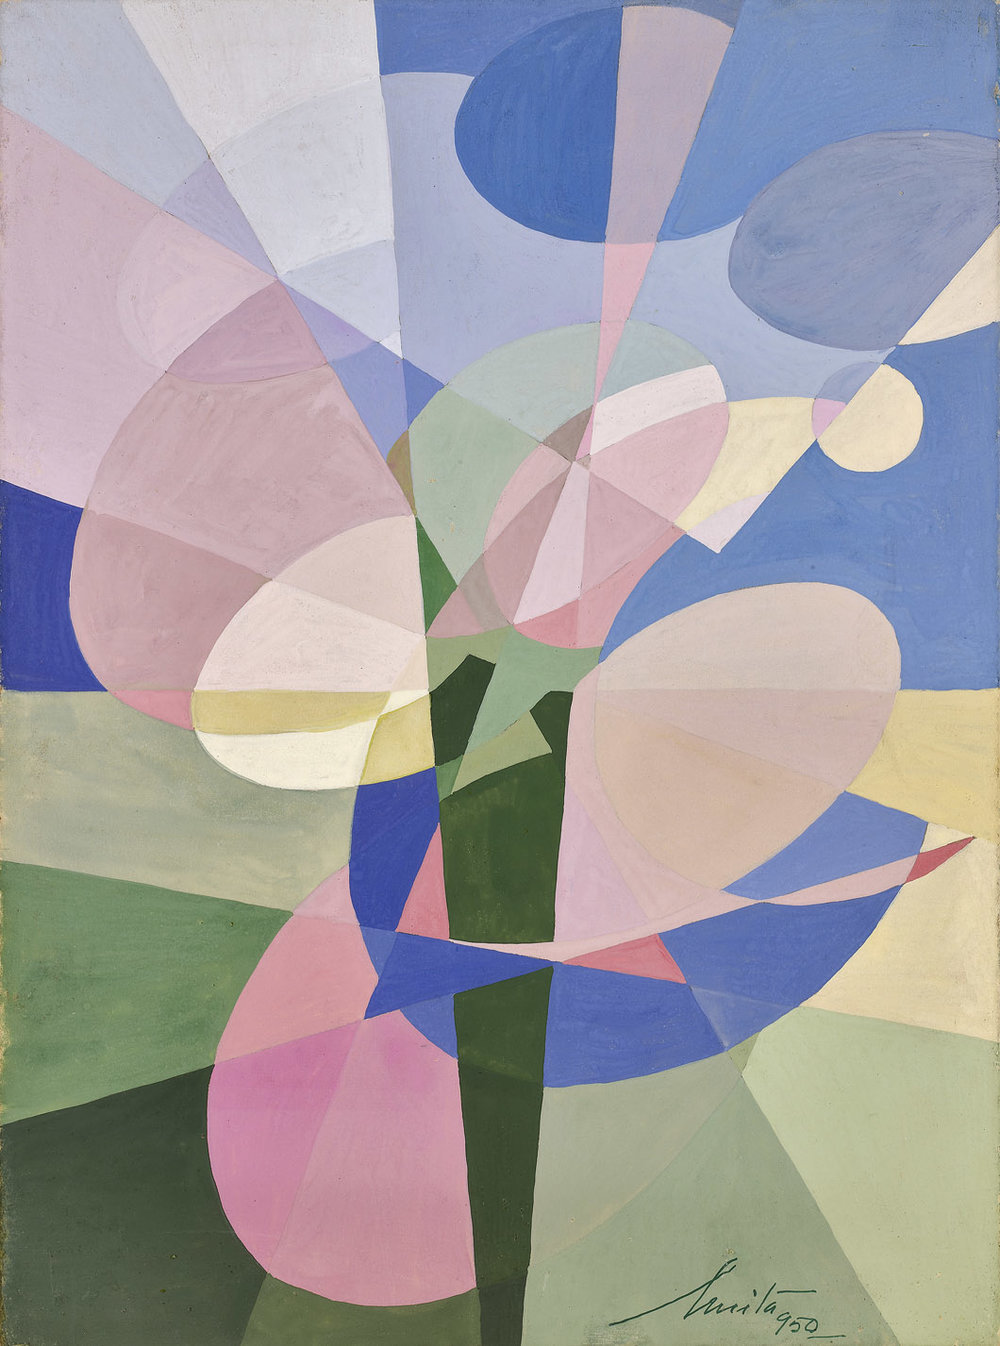 Anita Payró  (1897-1980)  Untitled Abstract Composition , 1950 oil and tempera on board 14 1/2 x 10 3/4 inches 36.8 x 27.3 centimeters